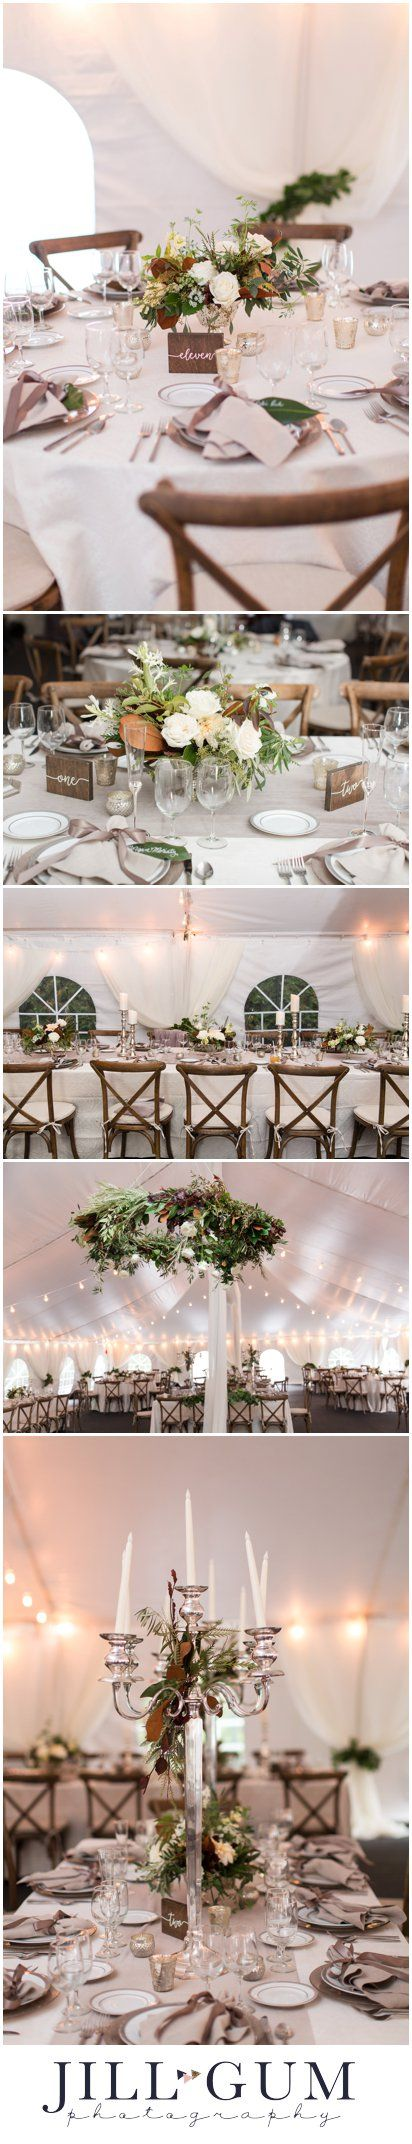 Elegant outdoor fall wedding, outdoor white tent wedding reception, sophisticated outdoor fall wedding, neutral fall wedding, classy outdoor fall wedding, True Colors Floral Artistry florals, luxurious outdoor wedding, white tent wedding reception, floral centerpieces, Jill Gum Photography, IL Wedding Photographer, Midwest weddings, floral chandelier, elegant neutral place settings for reception, long tables and round tables for wedding reception, reception place setting inspiration